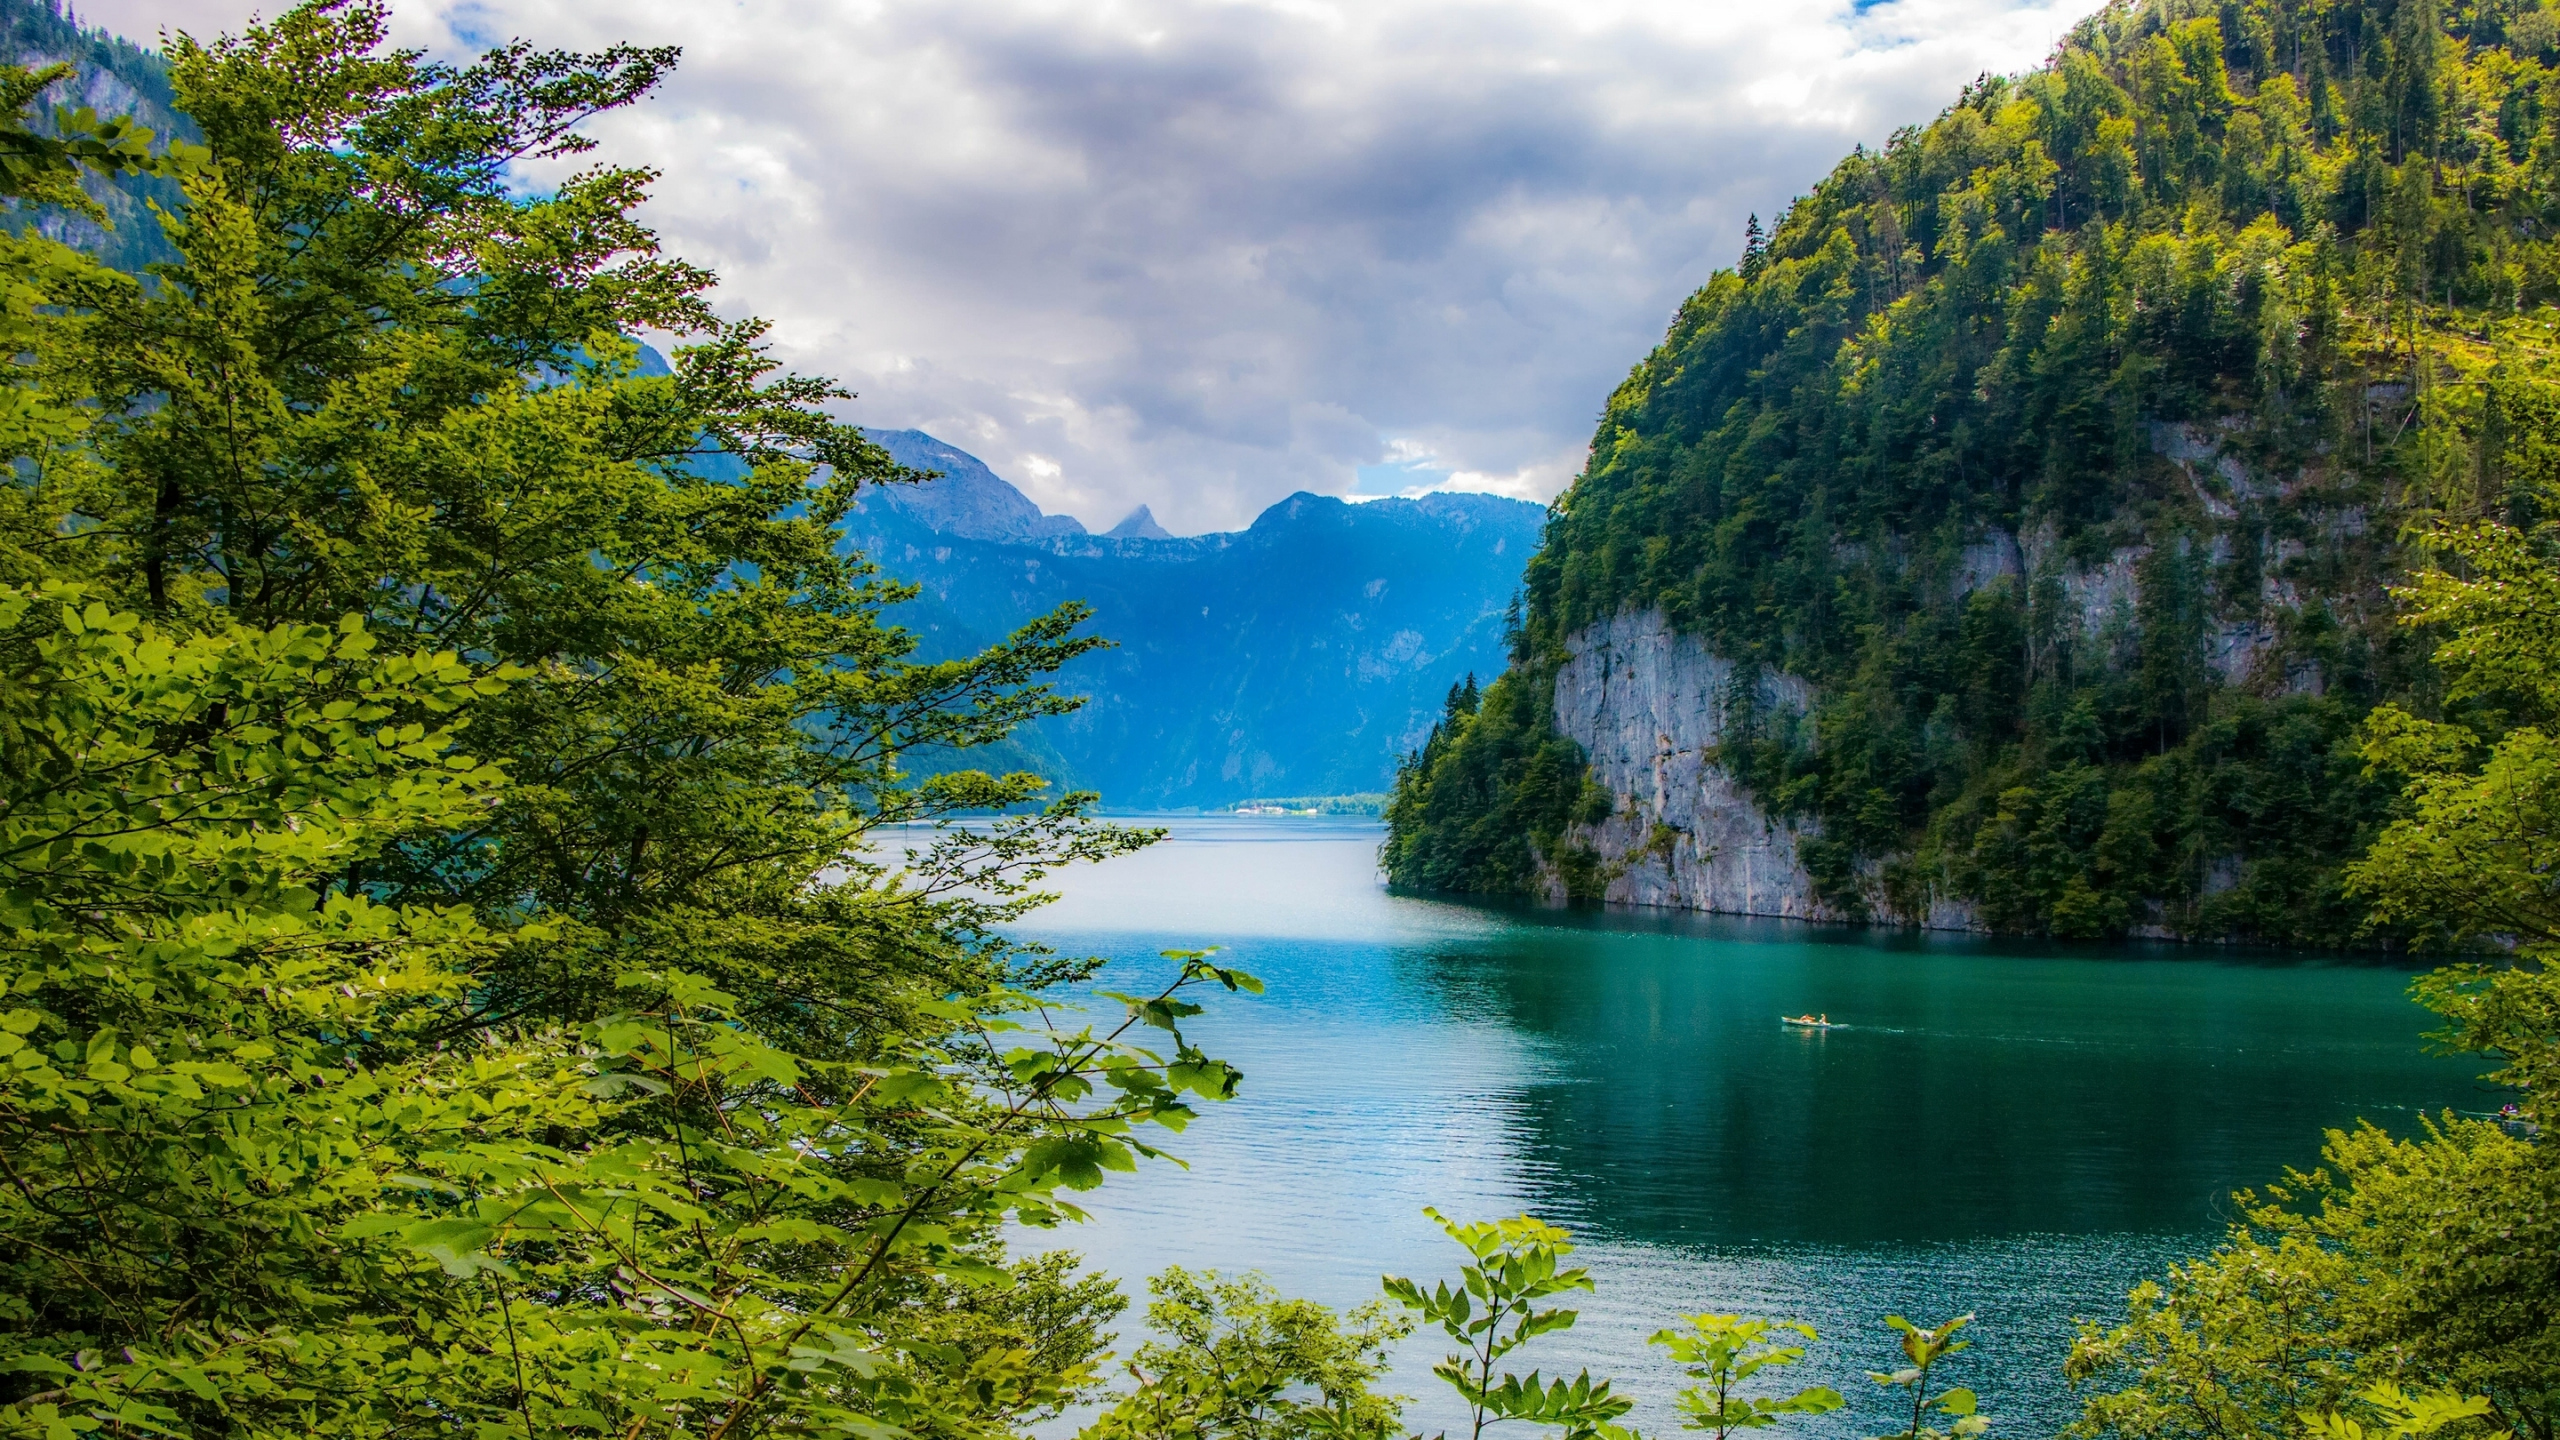 Königssee The Bavarian Alps, Download Wallpaper 2560x1440 Bavarian alps, Bavaria, Germany, Lake ...